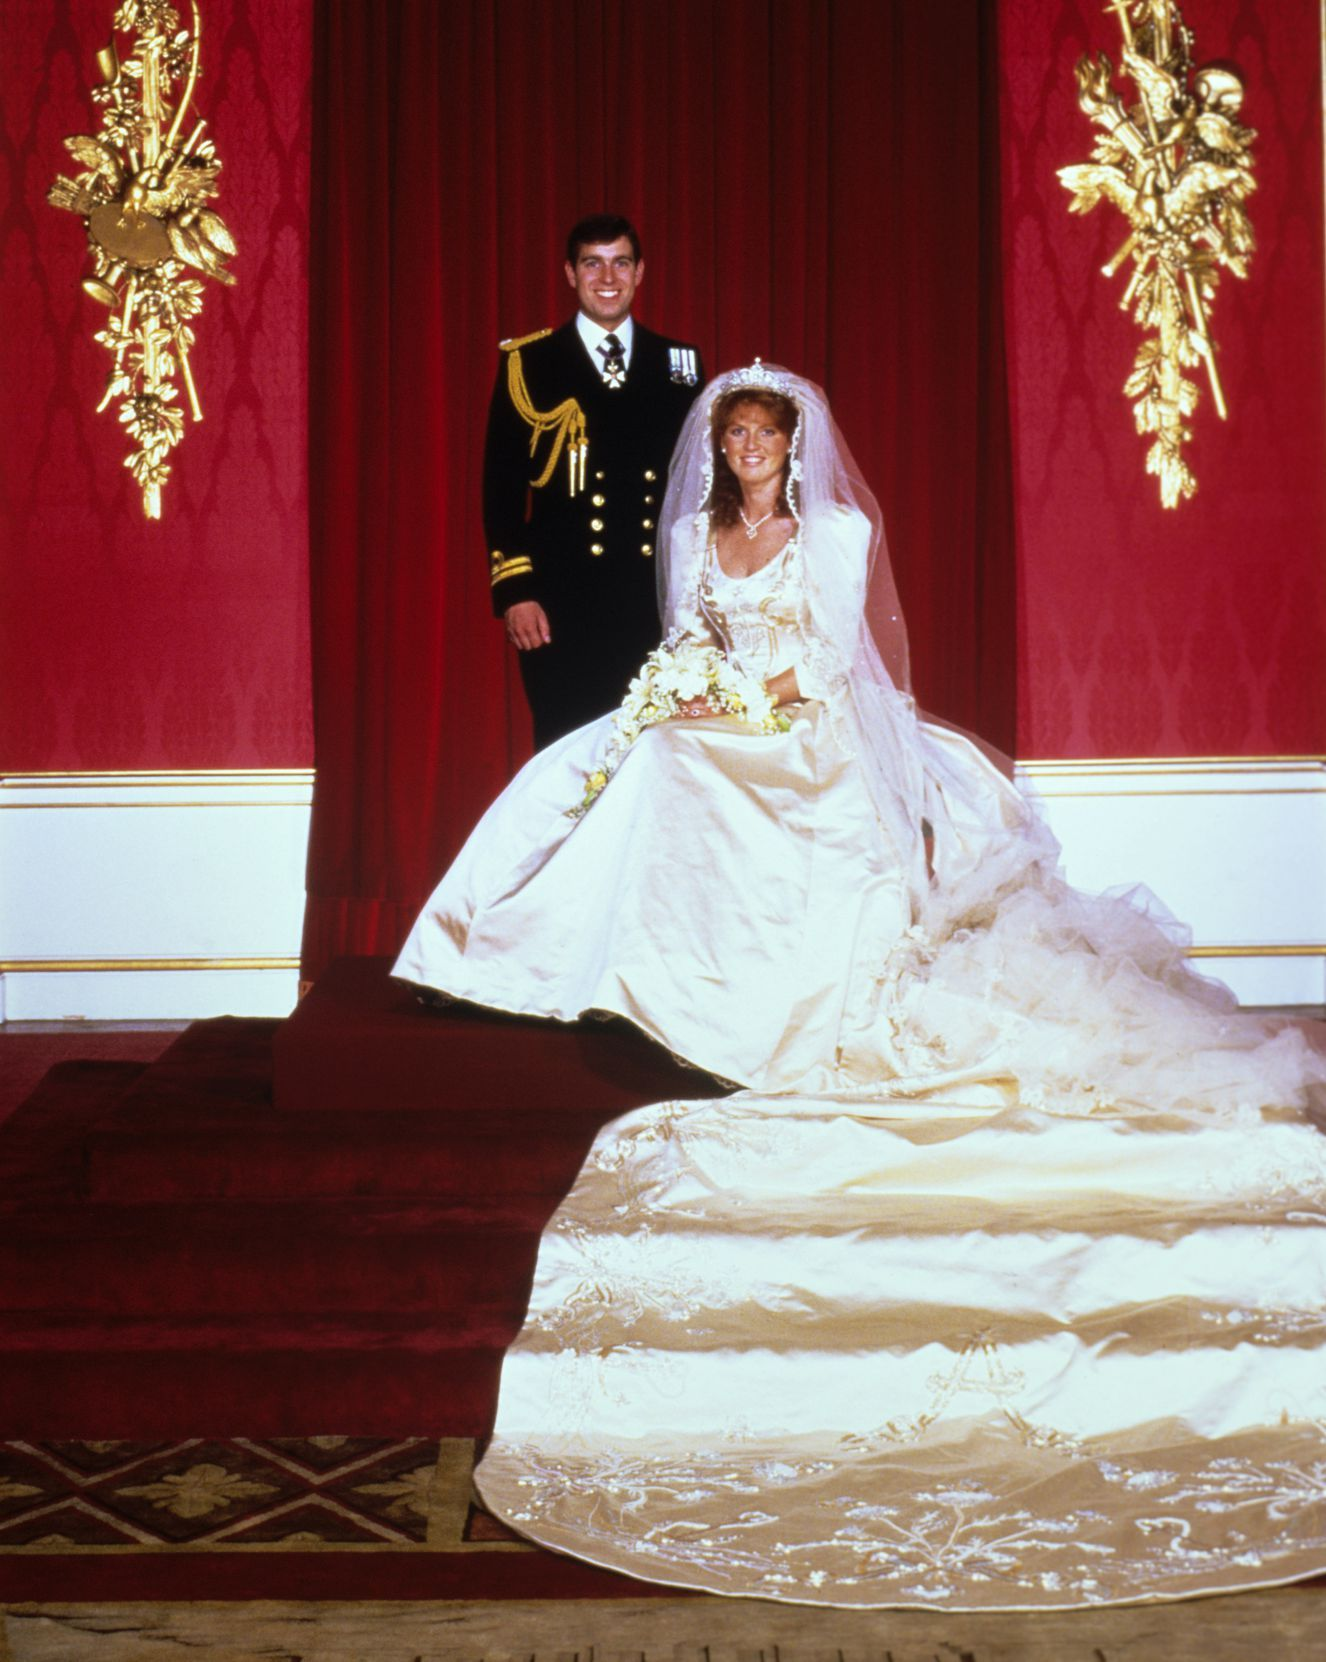 The Fascinating Story Behind Duplicate Royal Wedding